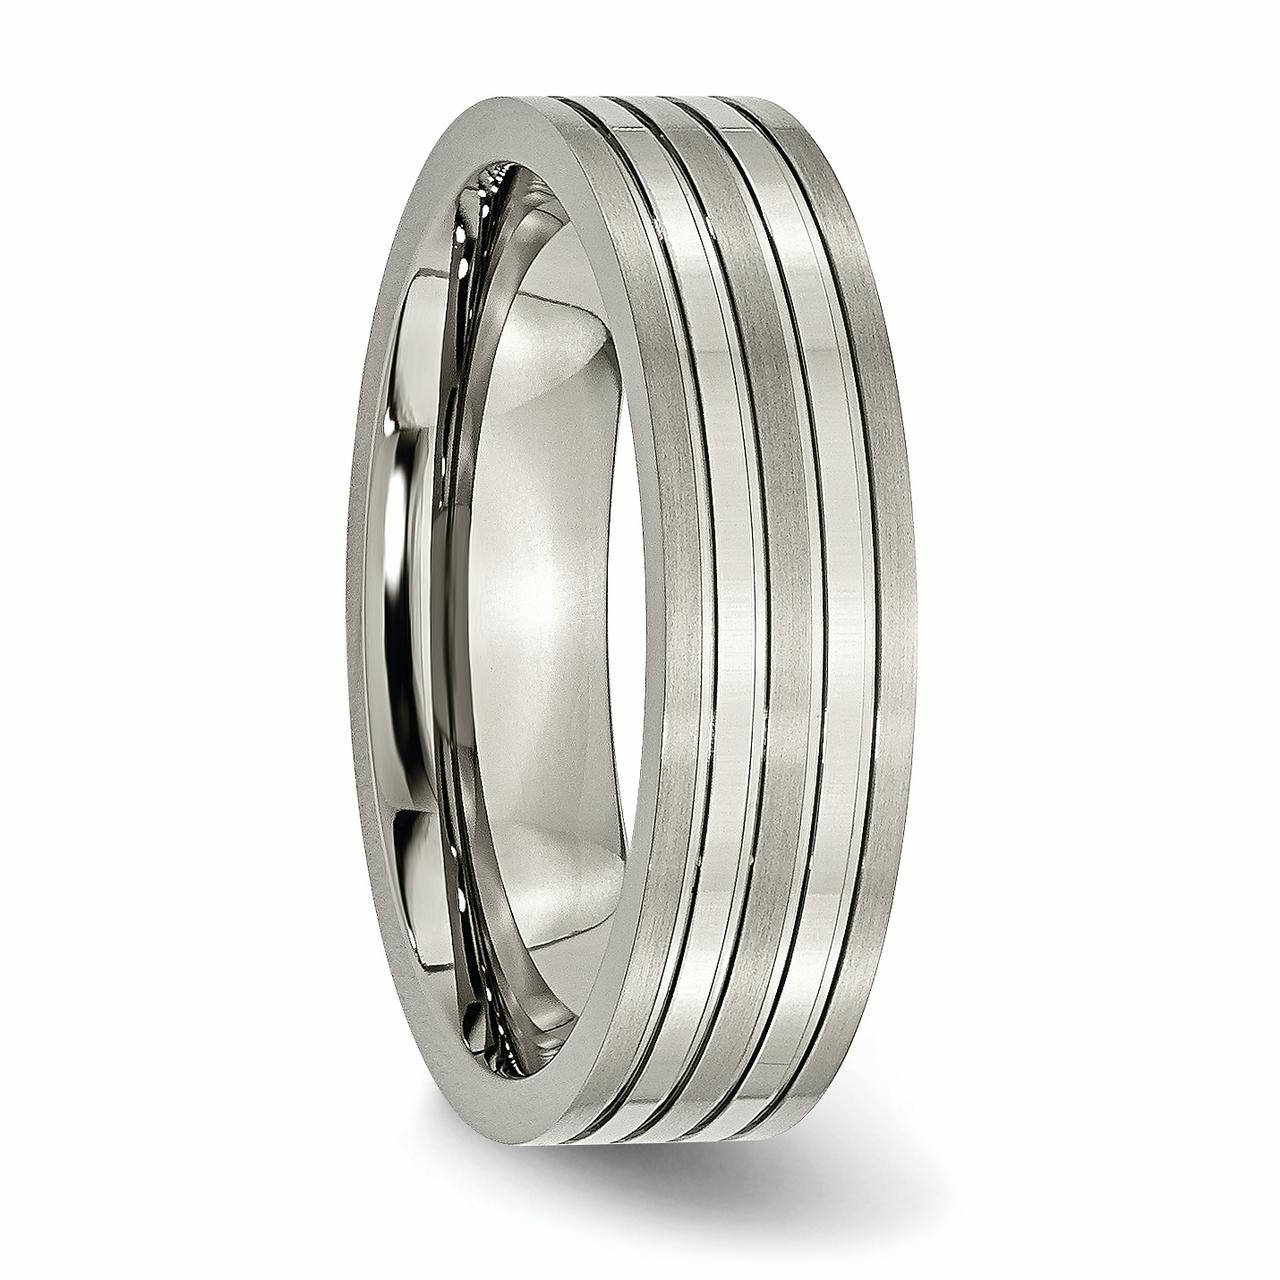 Titanium Grooved 6mm Brushed Wedding Ring Band Size 12.00 Fashion Jewelry Gifts For Women For Her - image 3 of 6